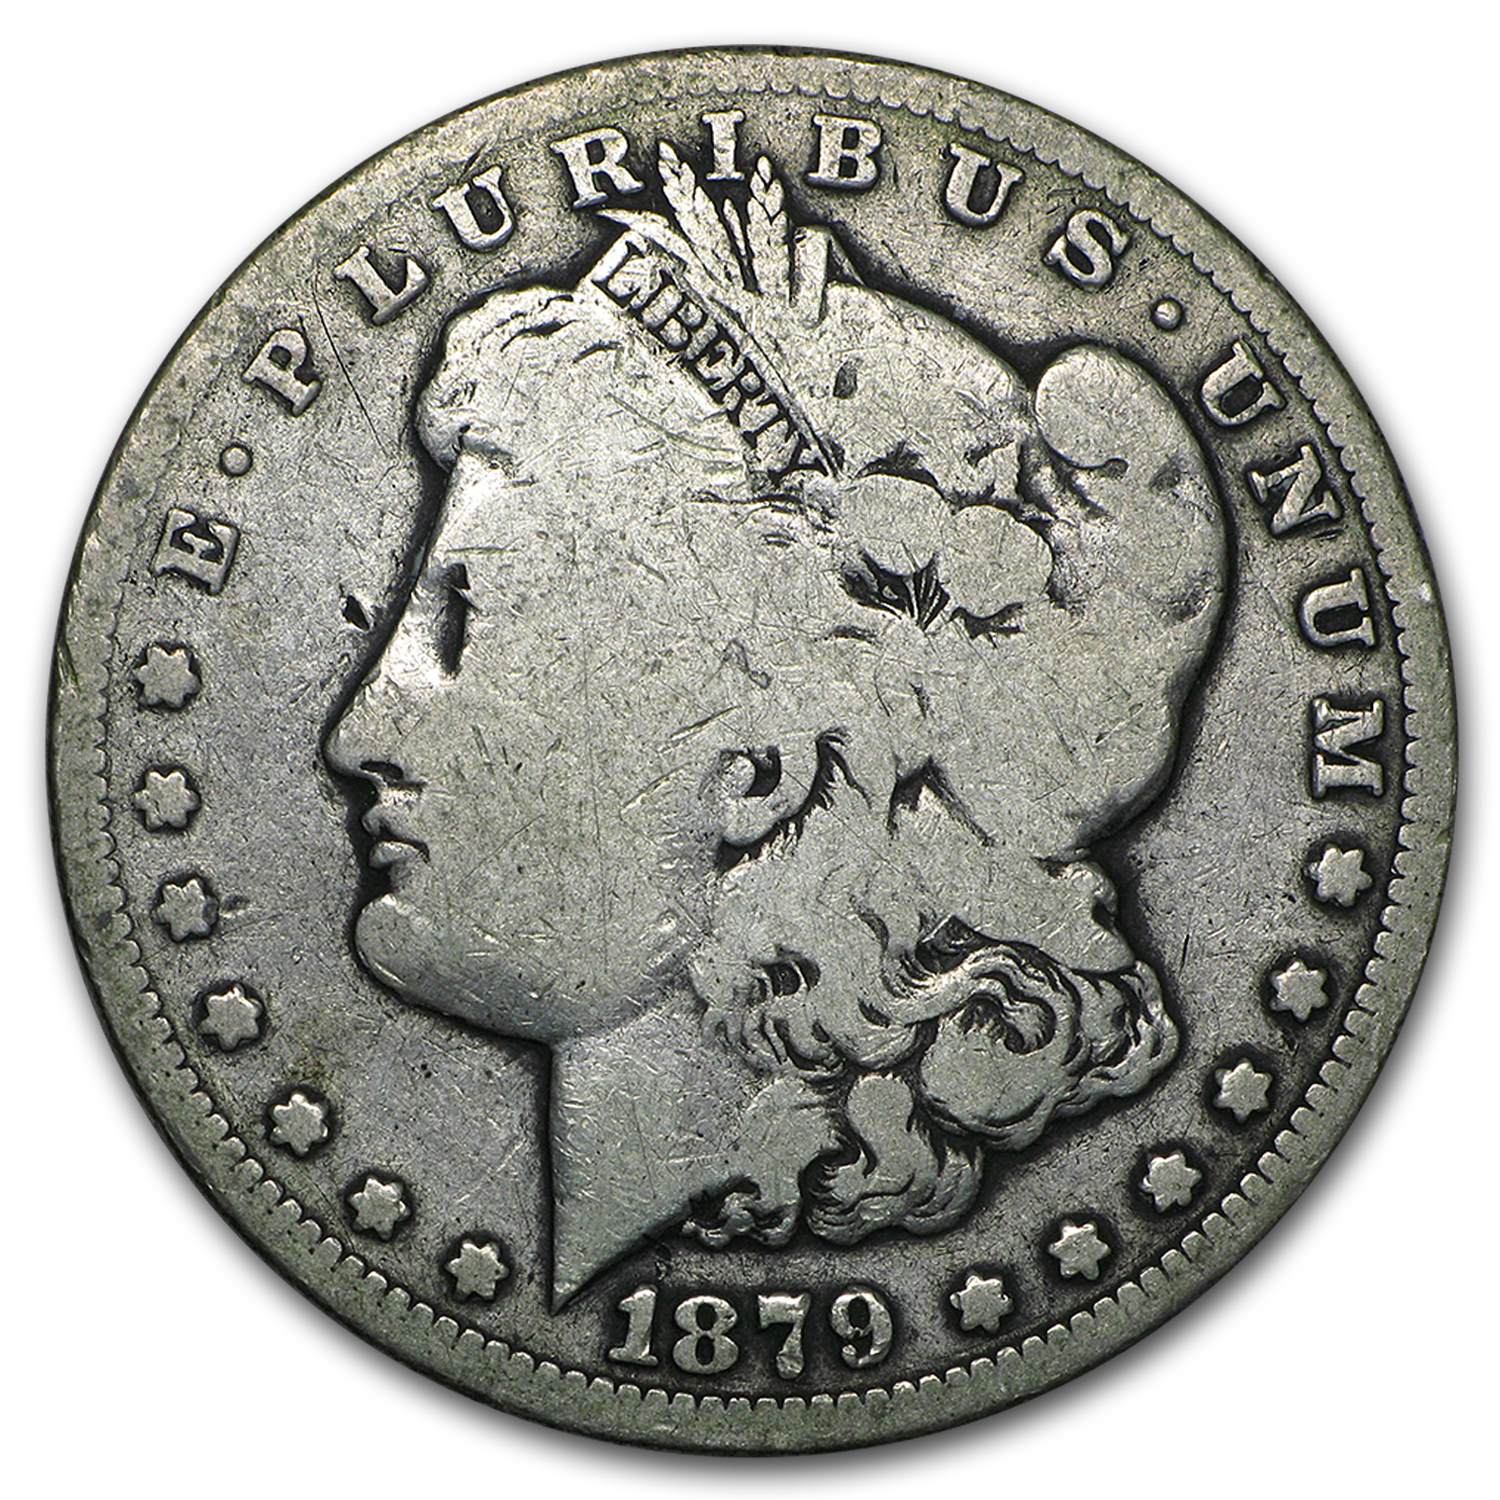 1879-CC Morgan Dollar - Very Good - Clear CC